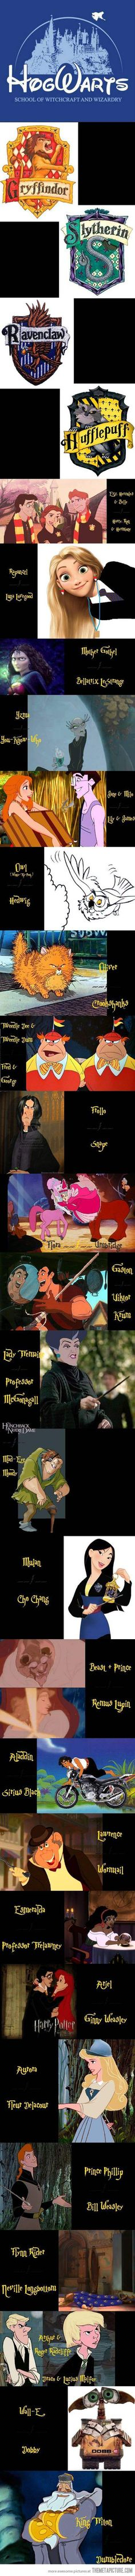 If Harry Potter was made by Disney…